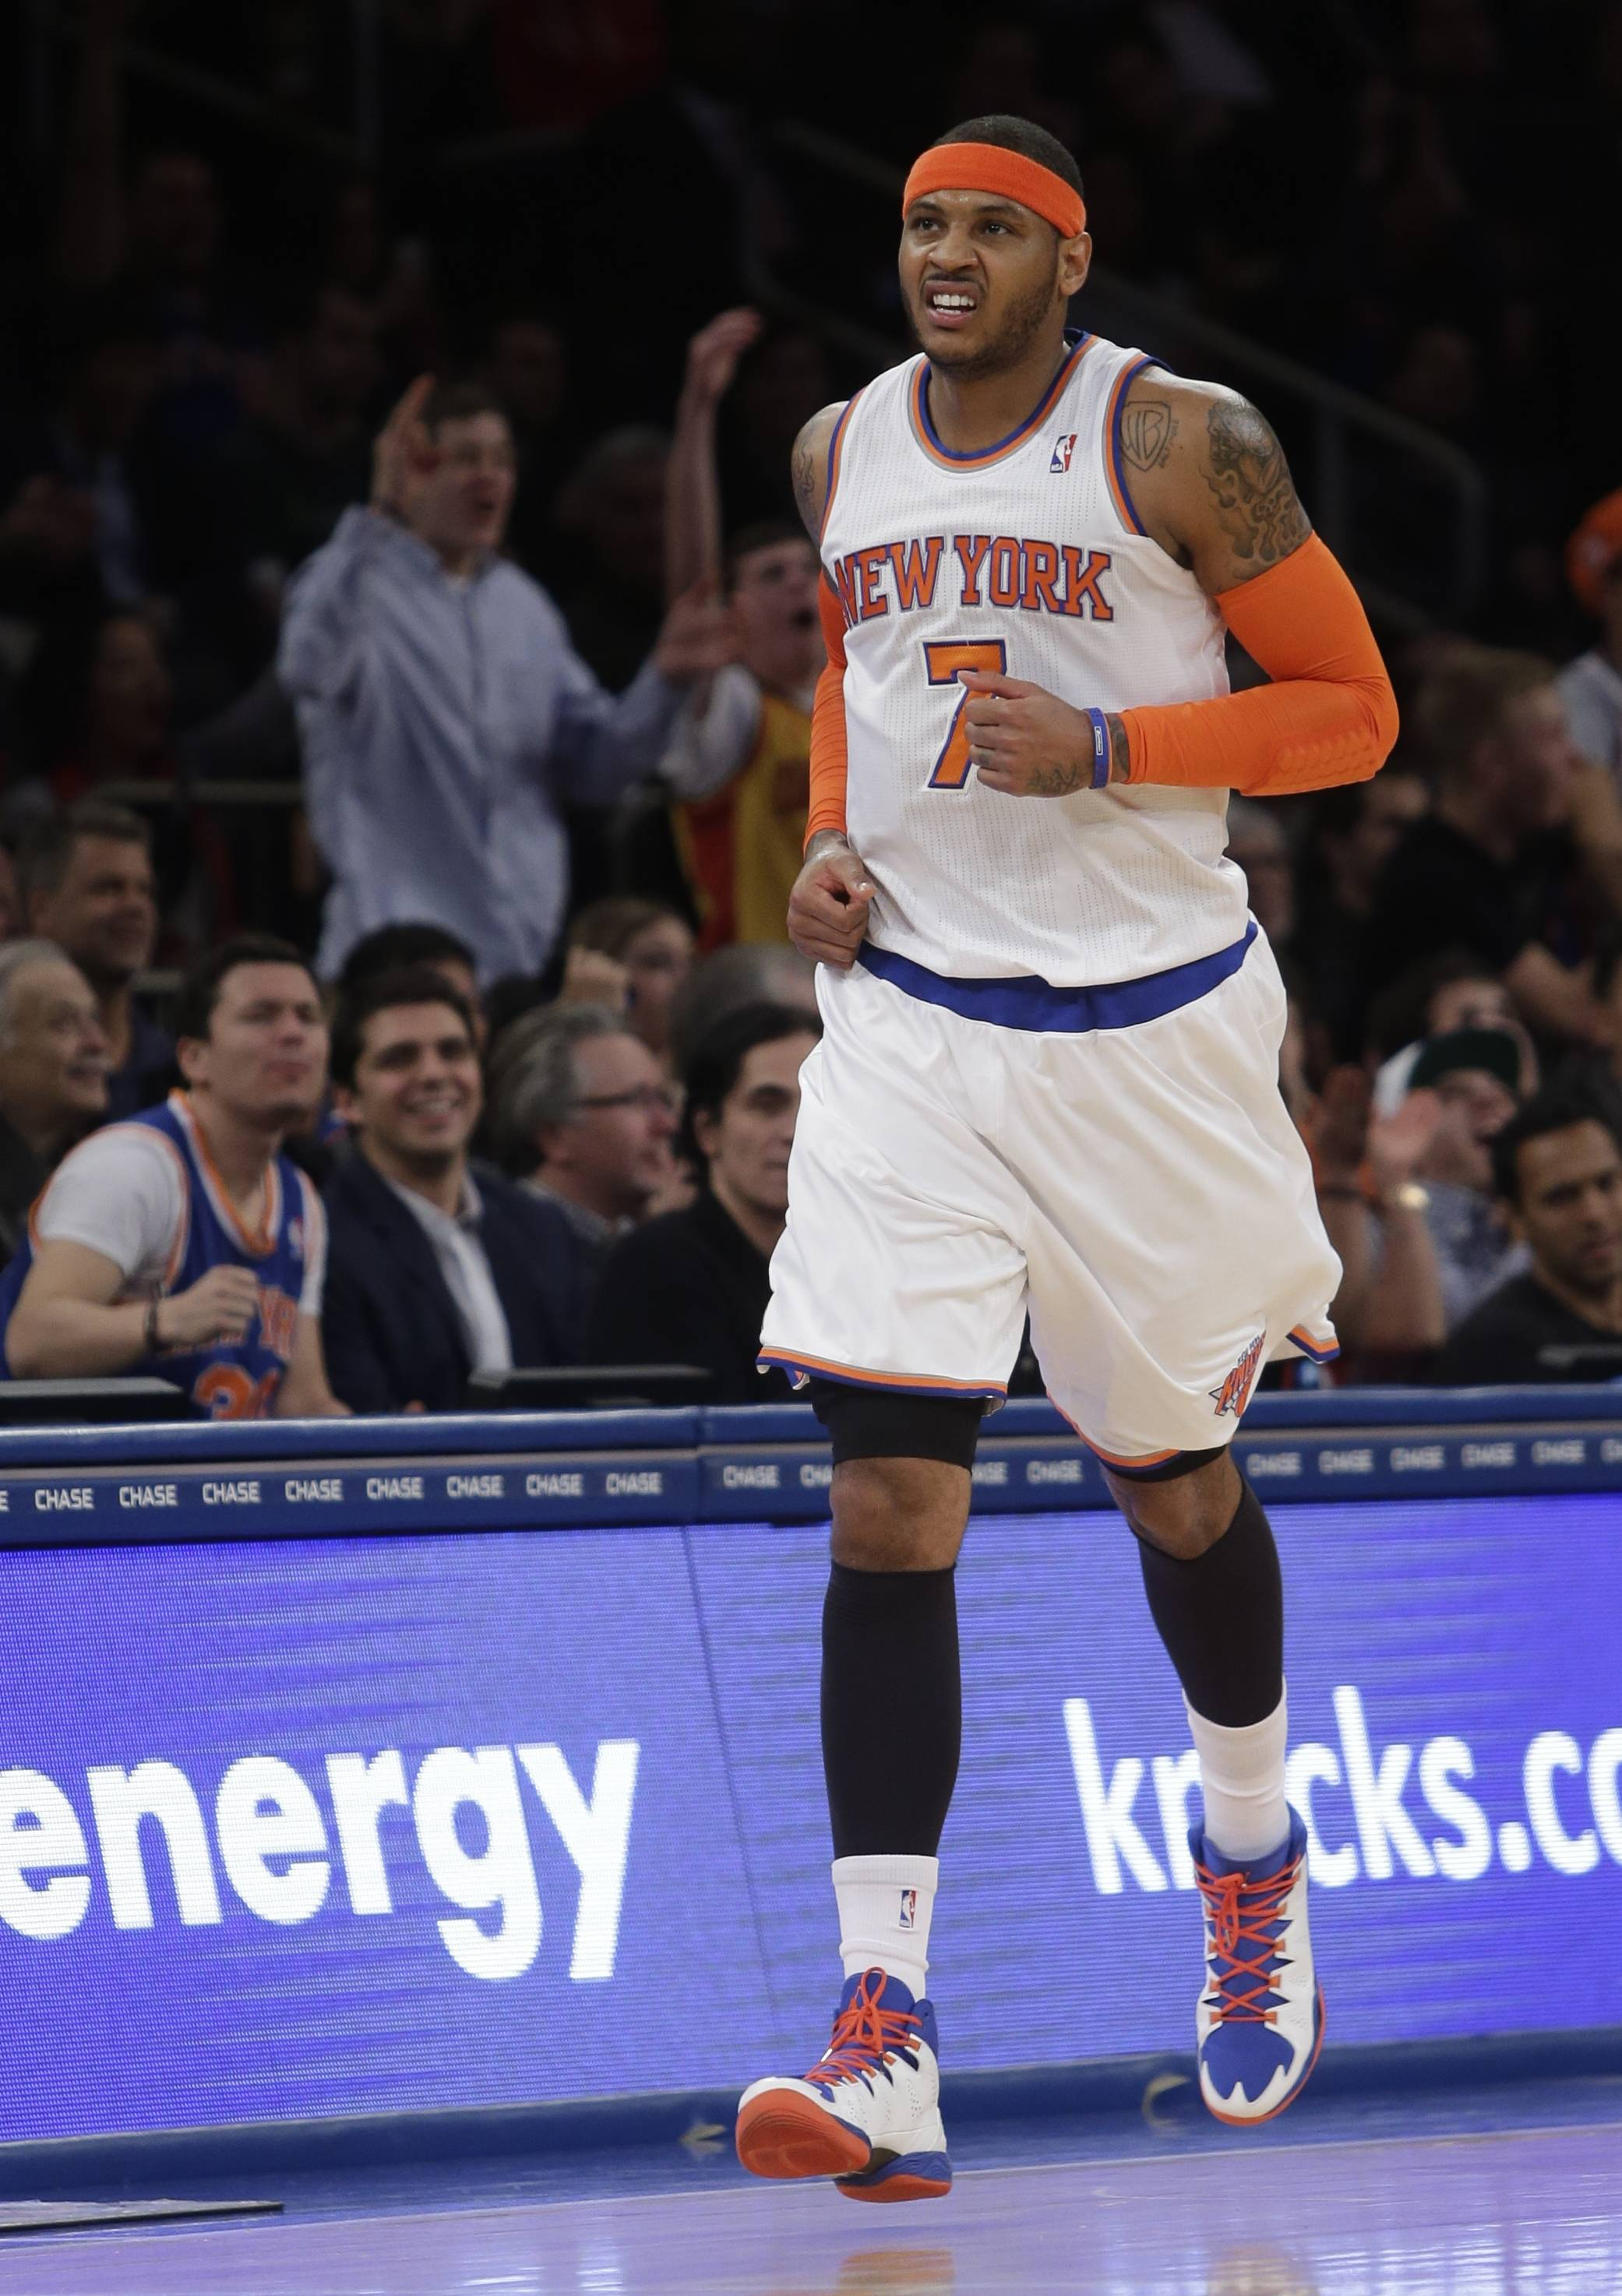 The Knicks' Carmelo Anthony reacts after scoring during the first half against the Utah Jazz on Friday night.